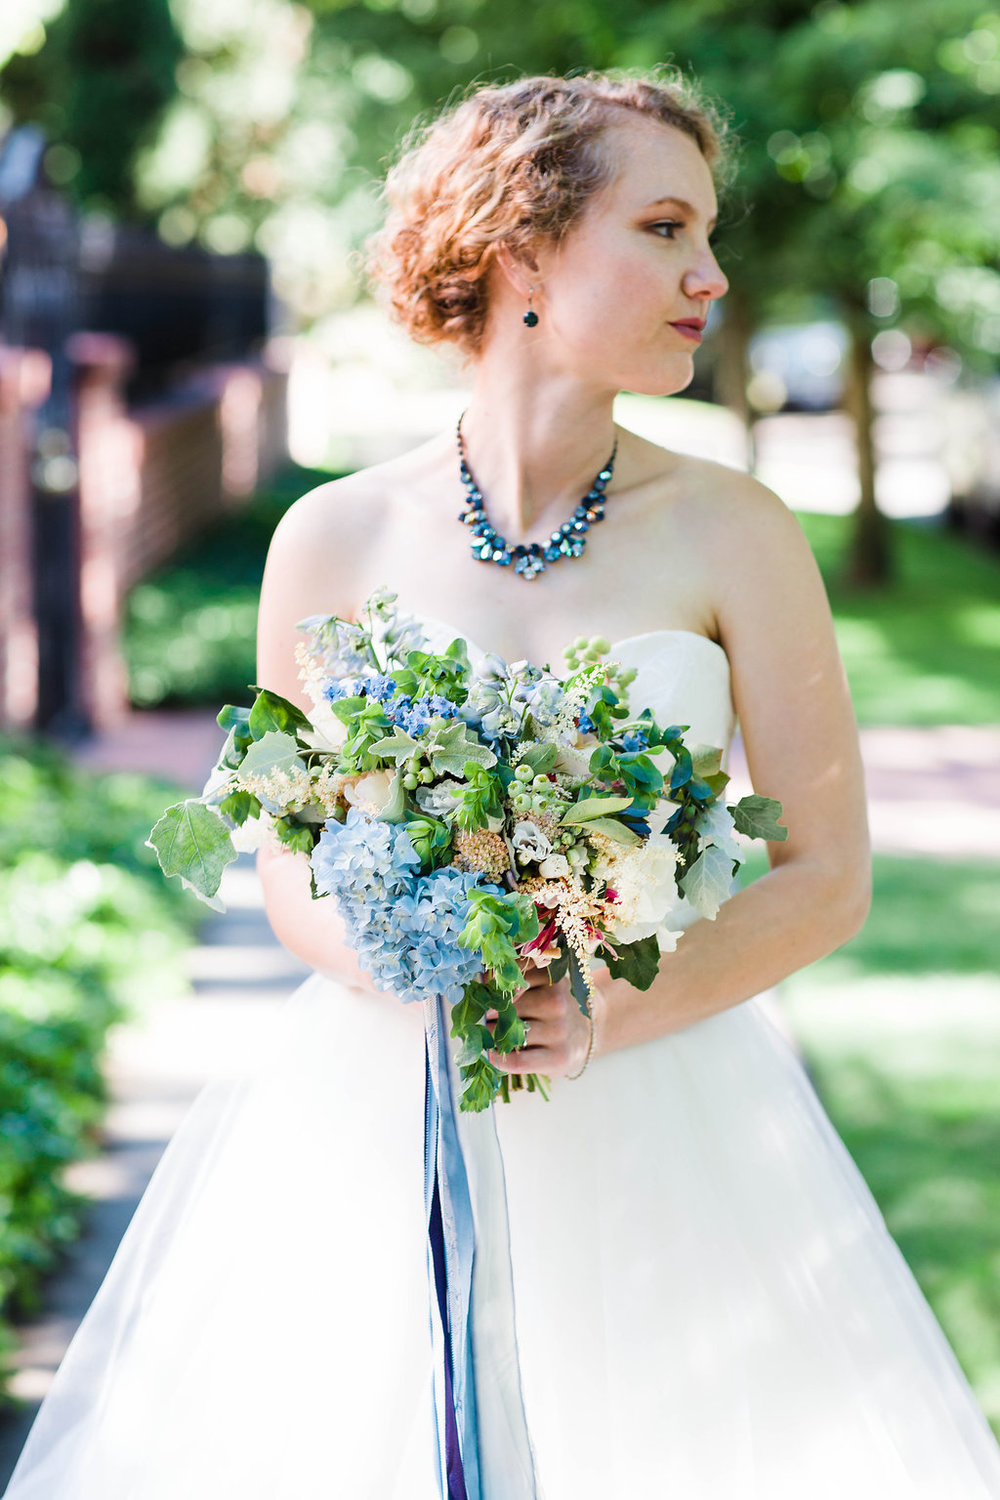 Nissa+Jesse_Wedding_Seattle_SoleRepairShop_6252015_100.jpg